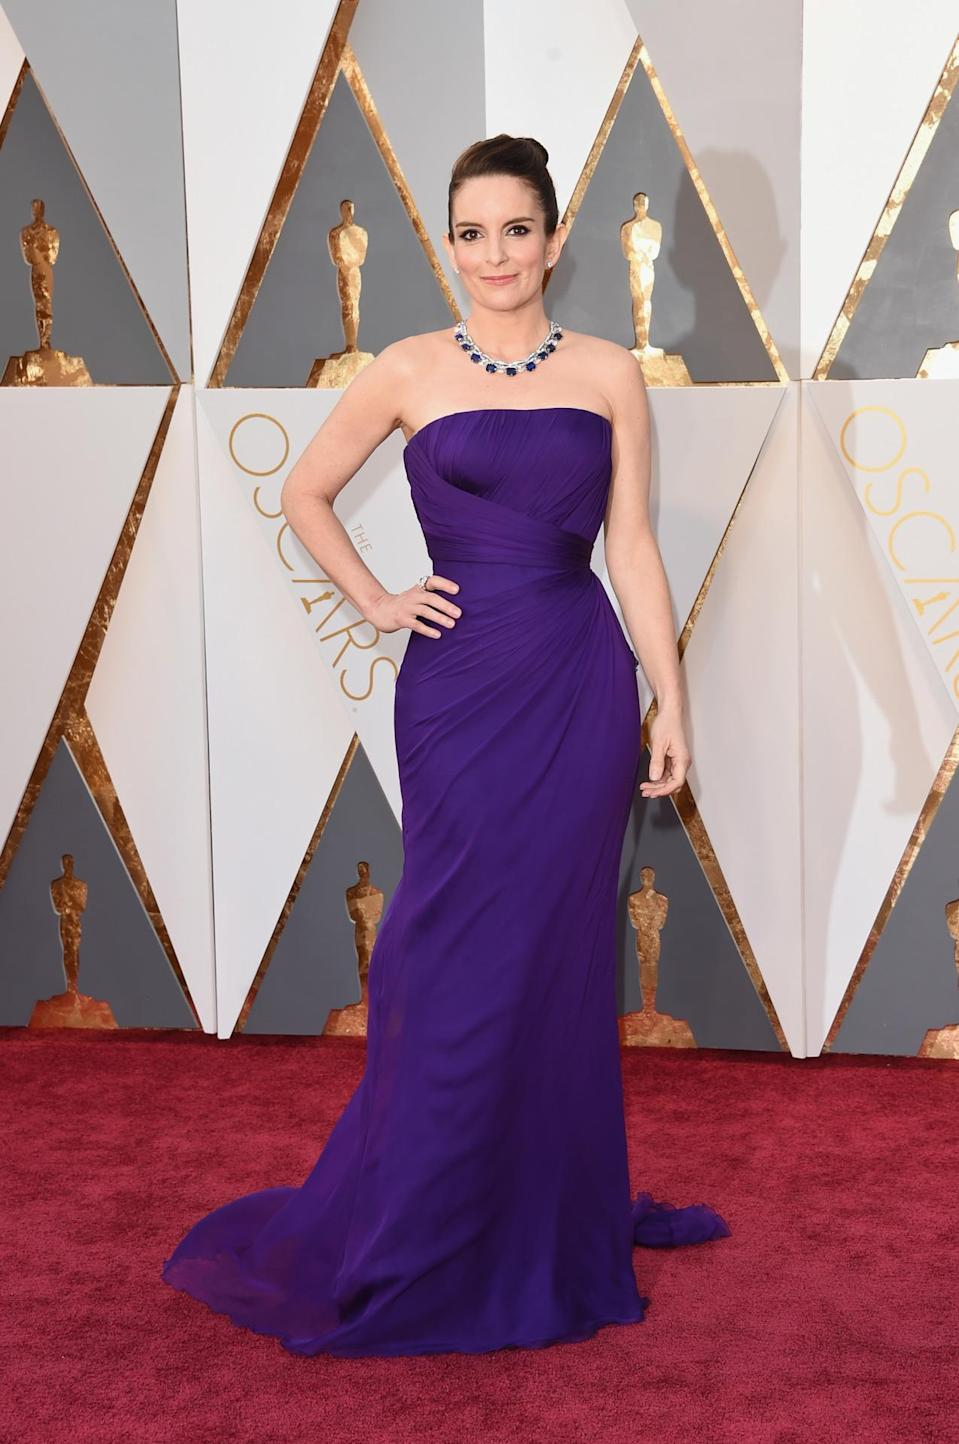 <p>Reese Witherspoon is that you? Nope, that's just her twin for the night, Tina Fey in Atelier Versace. <i>(Photo: Getty Images)</i></p>